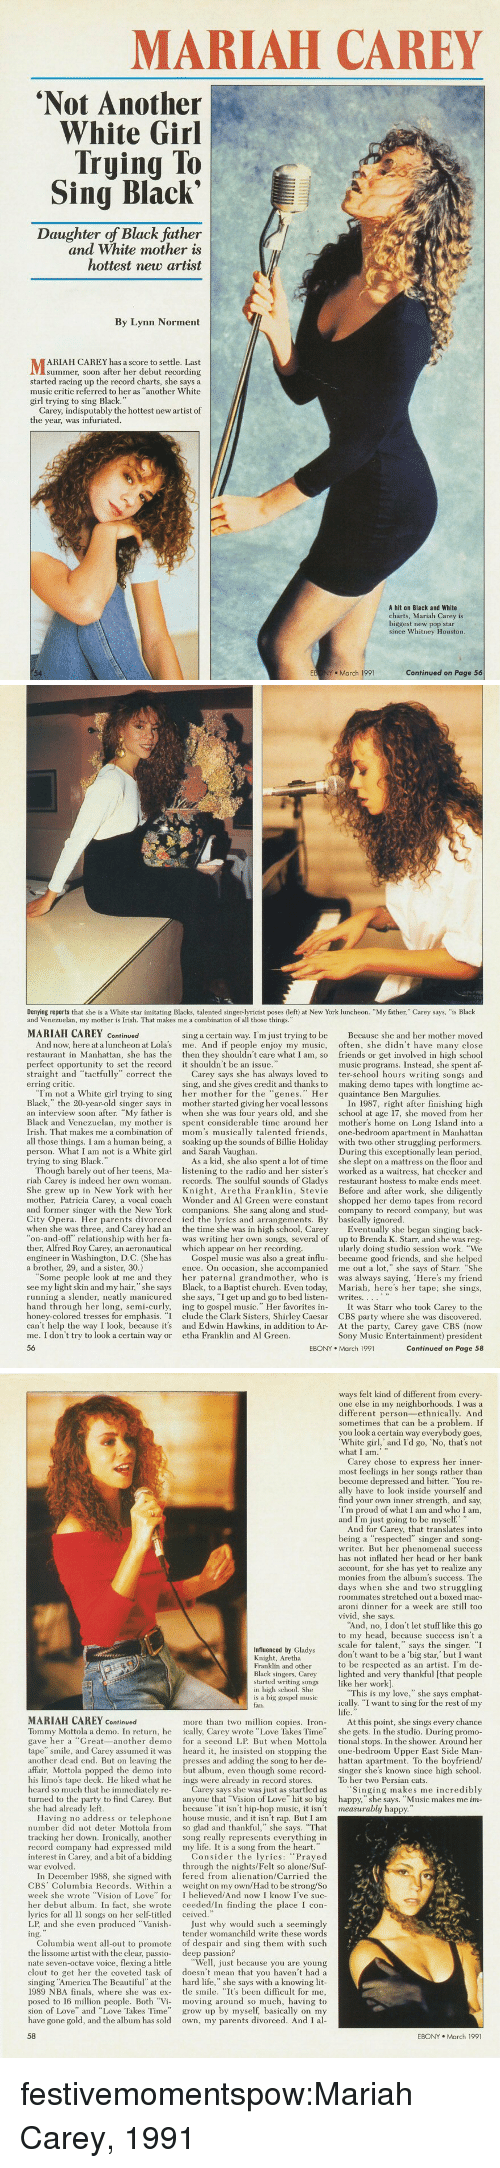 "whitney houston: MARIAH CAREY  Not Another  White Girl  Trying To  Sing Black'  Daughter of Black father  and White mother is  hottest new artist  By Lynn Norment  ARIAH CAREY has a score to settle. Last  summer, soon after her debut recording  started racing up the record charts, she says a  music critic referred to her as ""another White  girl trying to sing Black.""  Carey, indisputably the hottest new artist of  the year, was infuriated  A hit on Black and White  charts, Mariah Carey is  biggest new pop star  since Whitney Houston  54  EB NY March 1991  Continued on Page 56   Denying reports that she is a White star imitating Blacks, talented singer-lyricist poses (left) at New York luncheon. ""My father, Carey says, ""is Black  and Venezuelan, my mother is Irish. That makes me a combination of all those things.""  MARIAH CAREY Continued  sing a certain way. I'm just trying to be  Because she and her mother moved  And now, here at a luncheon at Lolas me. And if people enjoy my music, often, she didn't have many close  n Manhattan, she has the then they shouldn't care what I am, so friends or get involved in high school  music programs. Instead, she spent af-  straight and ""tactfully"" correct the Carey says she has always loved to ter-school hours writing songs and  ing, and she gives credit and thanks to making demo tapes with longtime ac-  perfect opportunity to set the record  it shouldn't be an issue  erring critic.  ""Im not a White girl trying to sing her mother for the ""genes. Her quaintance Ben Margulies  Black,"" the 20-year-old singer says in mother started giving her vocal lessons I 1987, right after finishing high  an interview soon after. ""My father is when she was four years old, and she school at age 17, she moved from her  Black and Venezuelan, my mother is spent considerable time around her mother's home on Long Island into a  Irish. That makes me a combination of mom's musically talented friends, one-bedroom apartment in Manhattan  all those things. I am a human being, a soaking up the sounds of Billie Holiday with two other struggling performers  During this exceptionally lean period,  As a kid, she also spent a lot of time she slept on a mattress on the floor and  Though barely out of her teens, Ma- listening to the radio and her sister's worked as a waitress, hat checker and  riah Carey is indeed her own woman records. The soulful sounds of Gladys restaurant hostess to make ends meet  She grew up in New York with her Knight, Aretha Franklin, Stevie Before and after work, she diligently  mother, Patricia Carey, a vocal coach Wonder and Al Green were constant shopped her demo tapes from record  and former singer with the New York companions. She sang along and stud- company to record company, but was  person. What I am not is a White girl  trying to sing Black.  and Sarah Vaughan  City Opera. Her parents divorced ed the lyrics and arrangements. By basically ignored  when she was three, and Carey had an the time she was in high school, Carey  ther, Alfred Roy Carey, an aeronautica which appear on her recordin  a brother, 29, and a sister, 30.)  back  on-and-off"" relationship with her fa was writing her own songs, several of up to Brenda K. Starr, and she was reg  ularly doing studio session work. ""We  engineer in Washington, D.C. (She has Gospel music was also a great influ became good friends, and she helped  ence. On occasion, she accompanied me out a lot,"" she says of Starr. ""She  Some people look at me and they her paternal grandmother, who is was always saying, Here's my friend  see my light skin and my hair,"" she says Black, to a Baptist church. Even today, Mariah, here's her tape; she sings  Eventually she began  running a slender, neatly manicured  she says, ""I get up and go to bed listen-  writes..。。..  hand through her long, semi-curly, ing to gospel music."" Her favorites i It was Starr who took Carey to the  honey-colored tresses for emphasis. ""I clude the Clark Sisters, Shirley Caesar CBS party where she was discovered  can't help the way I look, because it's and Edwin Hawkins, in addition to Ar  me. I don't try to look a certain way or etha Franklin and Al Green  56  At t  Sony Music Entertainment) president  Continued on Page 58  EBONY March 1991   ways felt kind of different from every  one else in my neighborhoods. I was a  different person-ethnically. And  sometimes that can be a problem. If  you look a certain way everybody goes  White girl, and I'd go, No, that's not  Carey chose to express her inner-  most feelings in her songs rather than  become depressed and bitter. You re  ally have to look inside yourself and  find your own inner strength, and say,  Im proud of what I am and who I am  and I'm just going to be myself  And for Carey, that translates into  being a ""respected"" singer and song  writer. But her phenomenal success  has not inflated her head or her bank  account, for she has yet to realize any  monies from the album's success. The  days when she and two struggling  roommates stretched out a boxed mac  aroni dinner for a week are still too  Vivid, she says  And, no, I don't let stuff like this go  to my head, because success isn't a  scale for talent,"" says the singer. I  don't want to be a big star,' but I want  to be respected as an artist. I'm de-  Black singers, Carey lighted and very thankful [that people  Influenced by Gladys  Knight, Aretha  Franklin and other  started writing songs ike her work]  in high school. She  is a big gospel musio  fan.  ""This is my love,"" she says emphat  ically. ""I want to sing for the rest of my  MARIAH CAREY Continued  more than two million copies. In At this point, she sings every chance  Tommy Mottola a demo. In return, he ically, Carey wrote ""Love Takes Time"" she gets. In the studio. During promo  gave her a Great-another demo for a second LP. But when Mottola tional stops. In the shower. Around her  tape"" smile, and Carey assumed it was  another dead end. But on leaving the  heard it, he insisted on stop  g the one-bedroom Upper East Side Marn  hattan apartment. To the boyfriend/  affair, Mottola popped the demo into but album, even though some record singer she's known since high school  presses and adding the song to her de-  his limo's tape deck. He liked what he ings were already in record stores  heard so much that he immediately re-  To her two Persian cats  Carey says she was just as startled as  Singing makes me incredibly  turned to the party to find Carey. But anyone that Vision of Love"" hit so big happy,"" she says. ""Music makes me im  she had already left  because ""it isn't hip-hop music, it isn't measurably h  Having no address or telephone house music, and it isn't rap. But I am  number did not deter Mottola from so glad and thankful,"" she says. That  tracking her down. Ironically, another song really represents everything in  record company had expressed mild  interest in Carey, and a bit of a biddii  war evolved  my life. It is a song from the heart.  ing  Consider the lyrics: ""Prayed  through the nights/Felt so alone/Suf  In December 1988, she signed with fered from alienation/Carried the  CBS Columbia Records. Within a weight on my own/Had to be strong/So  week she wrote Vision of Love"" for I believed/And now I know I've suc-  her debut album. In fact, she wrote ceeded/In finding the place I con-  lyrics for all l songs on her self-titled ceived  LP, and she even produced Vanish-  the lissome artist with the clear, passio-  inging ""America The Beautiful"" at the  Just why would such a seemingly  tender womanchild write these words  Columbia went all-out to promote of despair and sing them with suclh  deep passion?  nate seven-octave voice, flexing a little ""Well, just because you are young  clout to get her the coveted task of doesn't mean that you haven't had a  hard life,"" she says with a knowing lit  1989 NBA finals, where she was ex- tle smile. ""It's been difficult for me,  posed to 16 million people. Both ""Vi moving around so much, having to  sion of Love"" and ""Love Takes Time grow up by myself, basically on my  have gone gold, and the album has sold own, my parents divorced. And I al  EBONY March 1991 festivemomentspow:Mariah Carey, 1991"